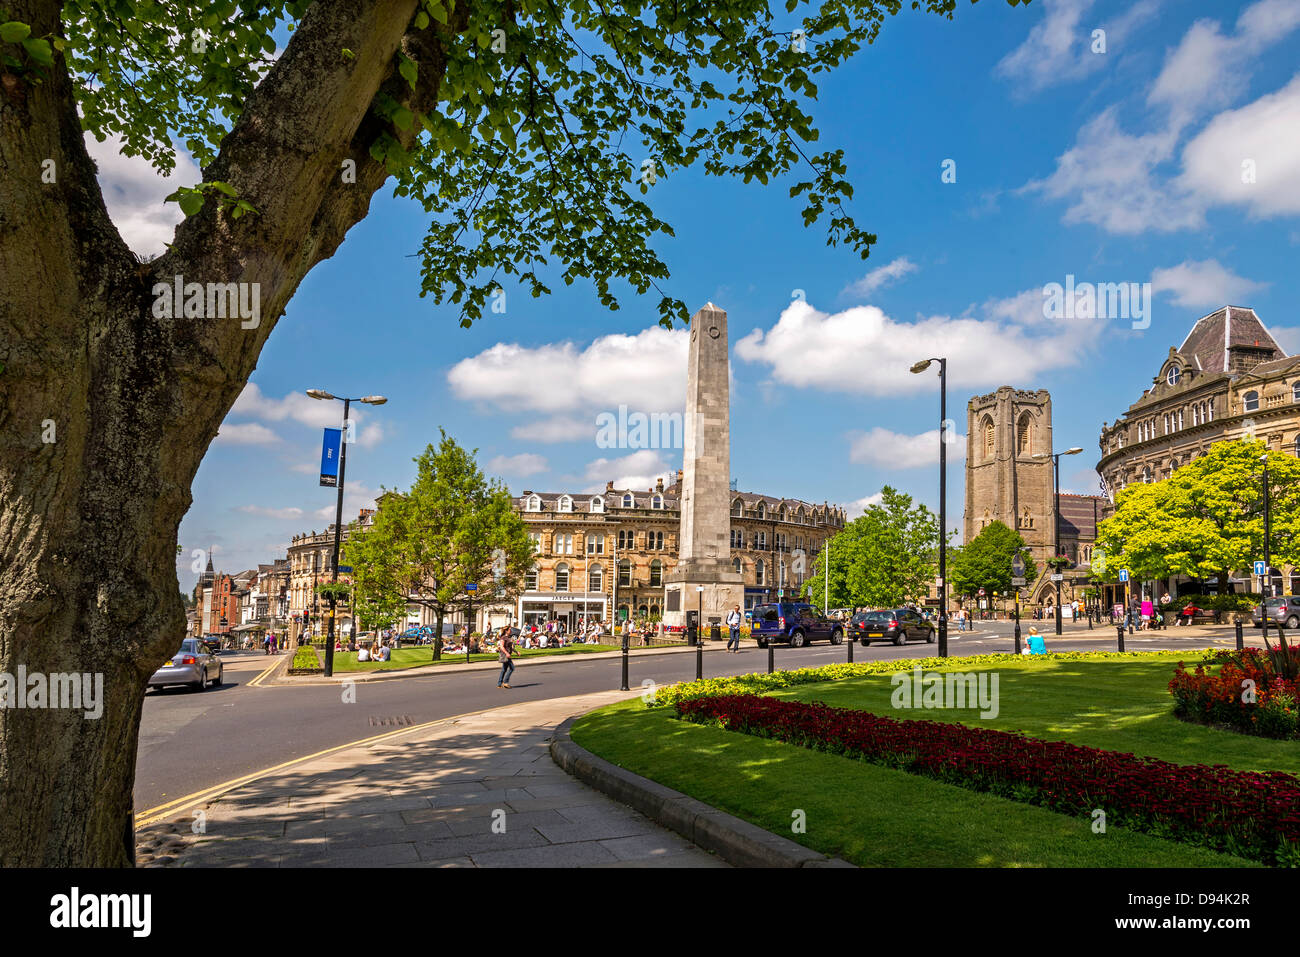 Harrogate in North Yorkshire formerly the West Riding of Yorkshire. The Cenotaph. The North of England. - Stock Image